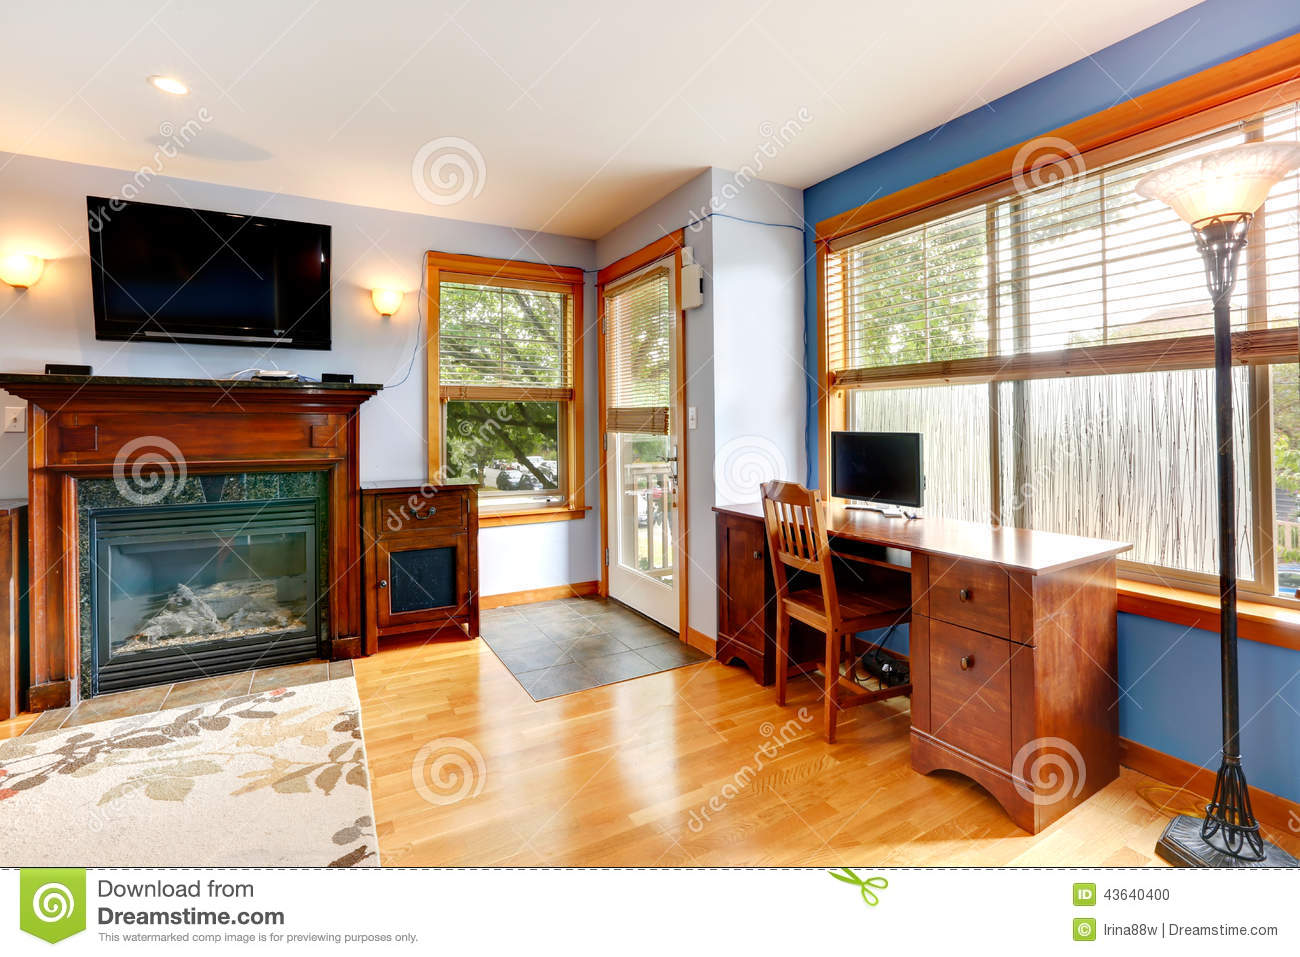 Living Room With Office Area Stock Photo - Image: 43640400